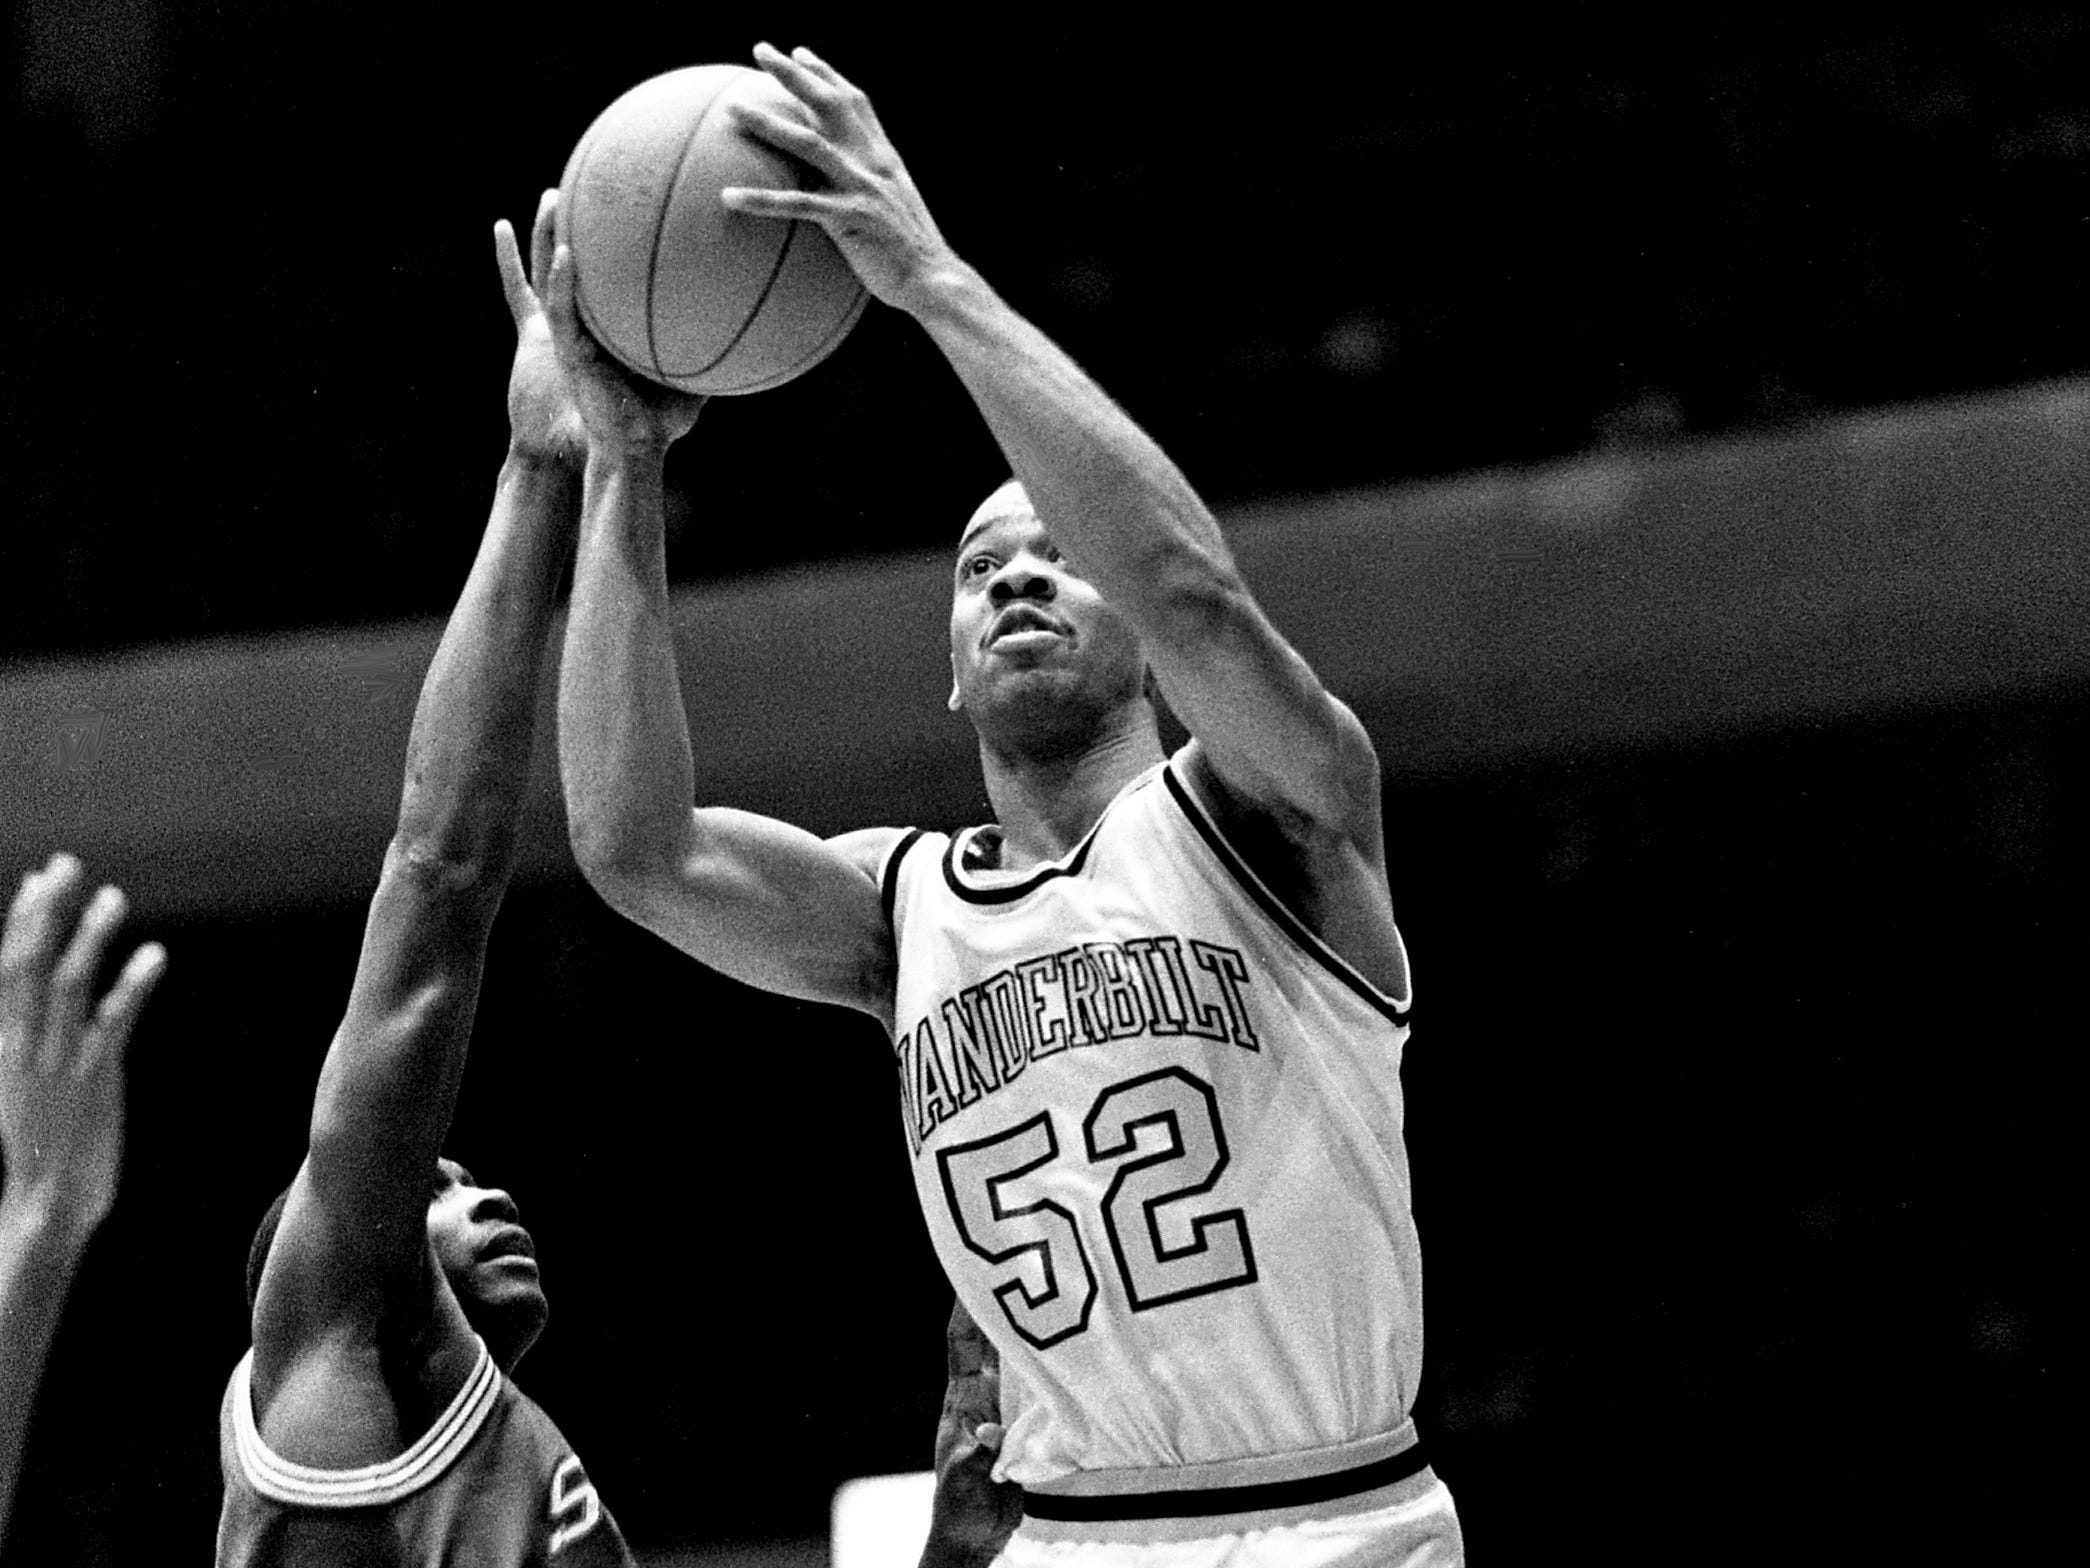 Vanderbilt junior forward Eric Reid (52) goes past Mississippi State defender Tony Watts for two of his 12 points in their 77-58 victory before 15,646 fans at Memorial Gym on March 1, 1989. Reid pulled down a career-high 13 rebounds.